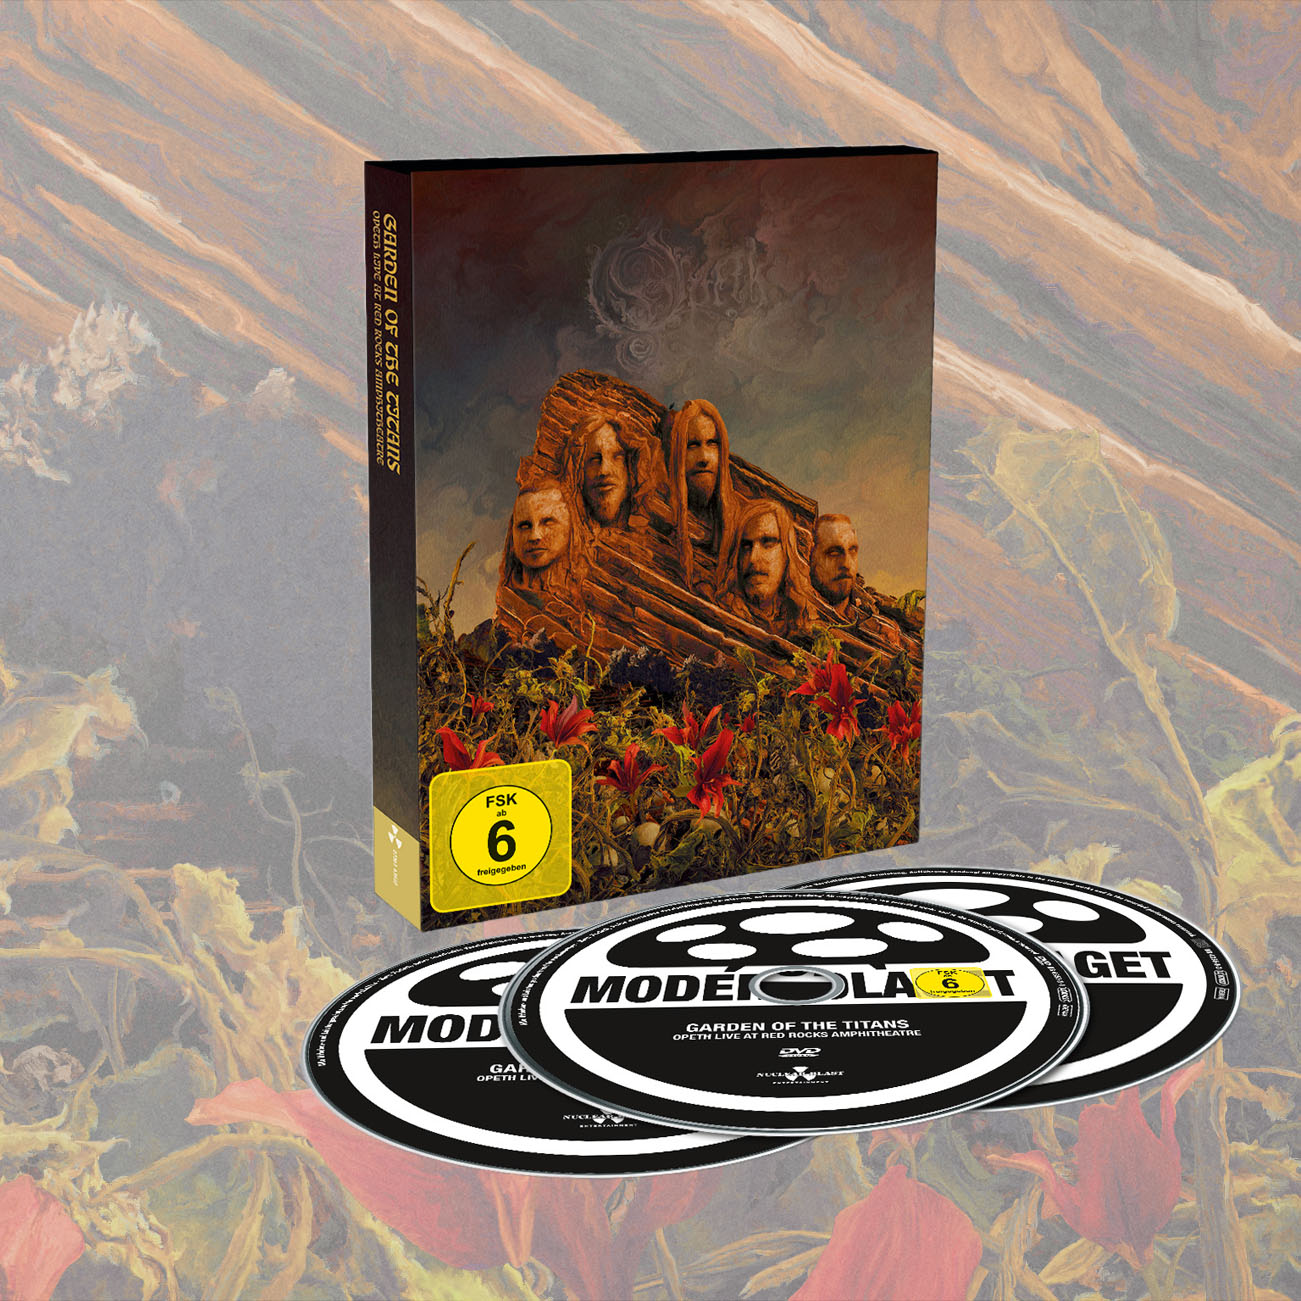 Opeth - 'Garden Of The Titans (Opeth Live at Red Rocks) DVD+2CD - Opeth